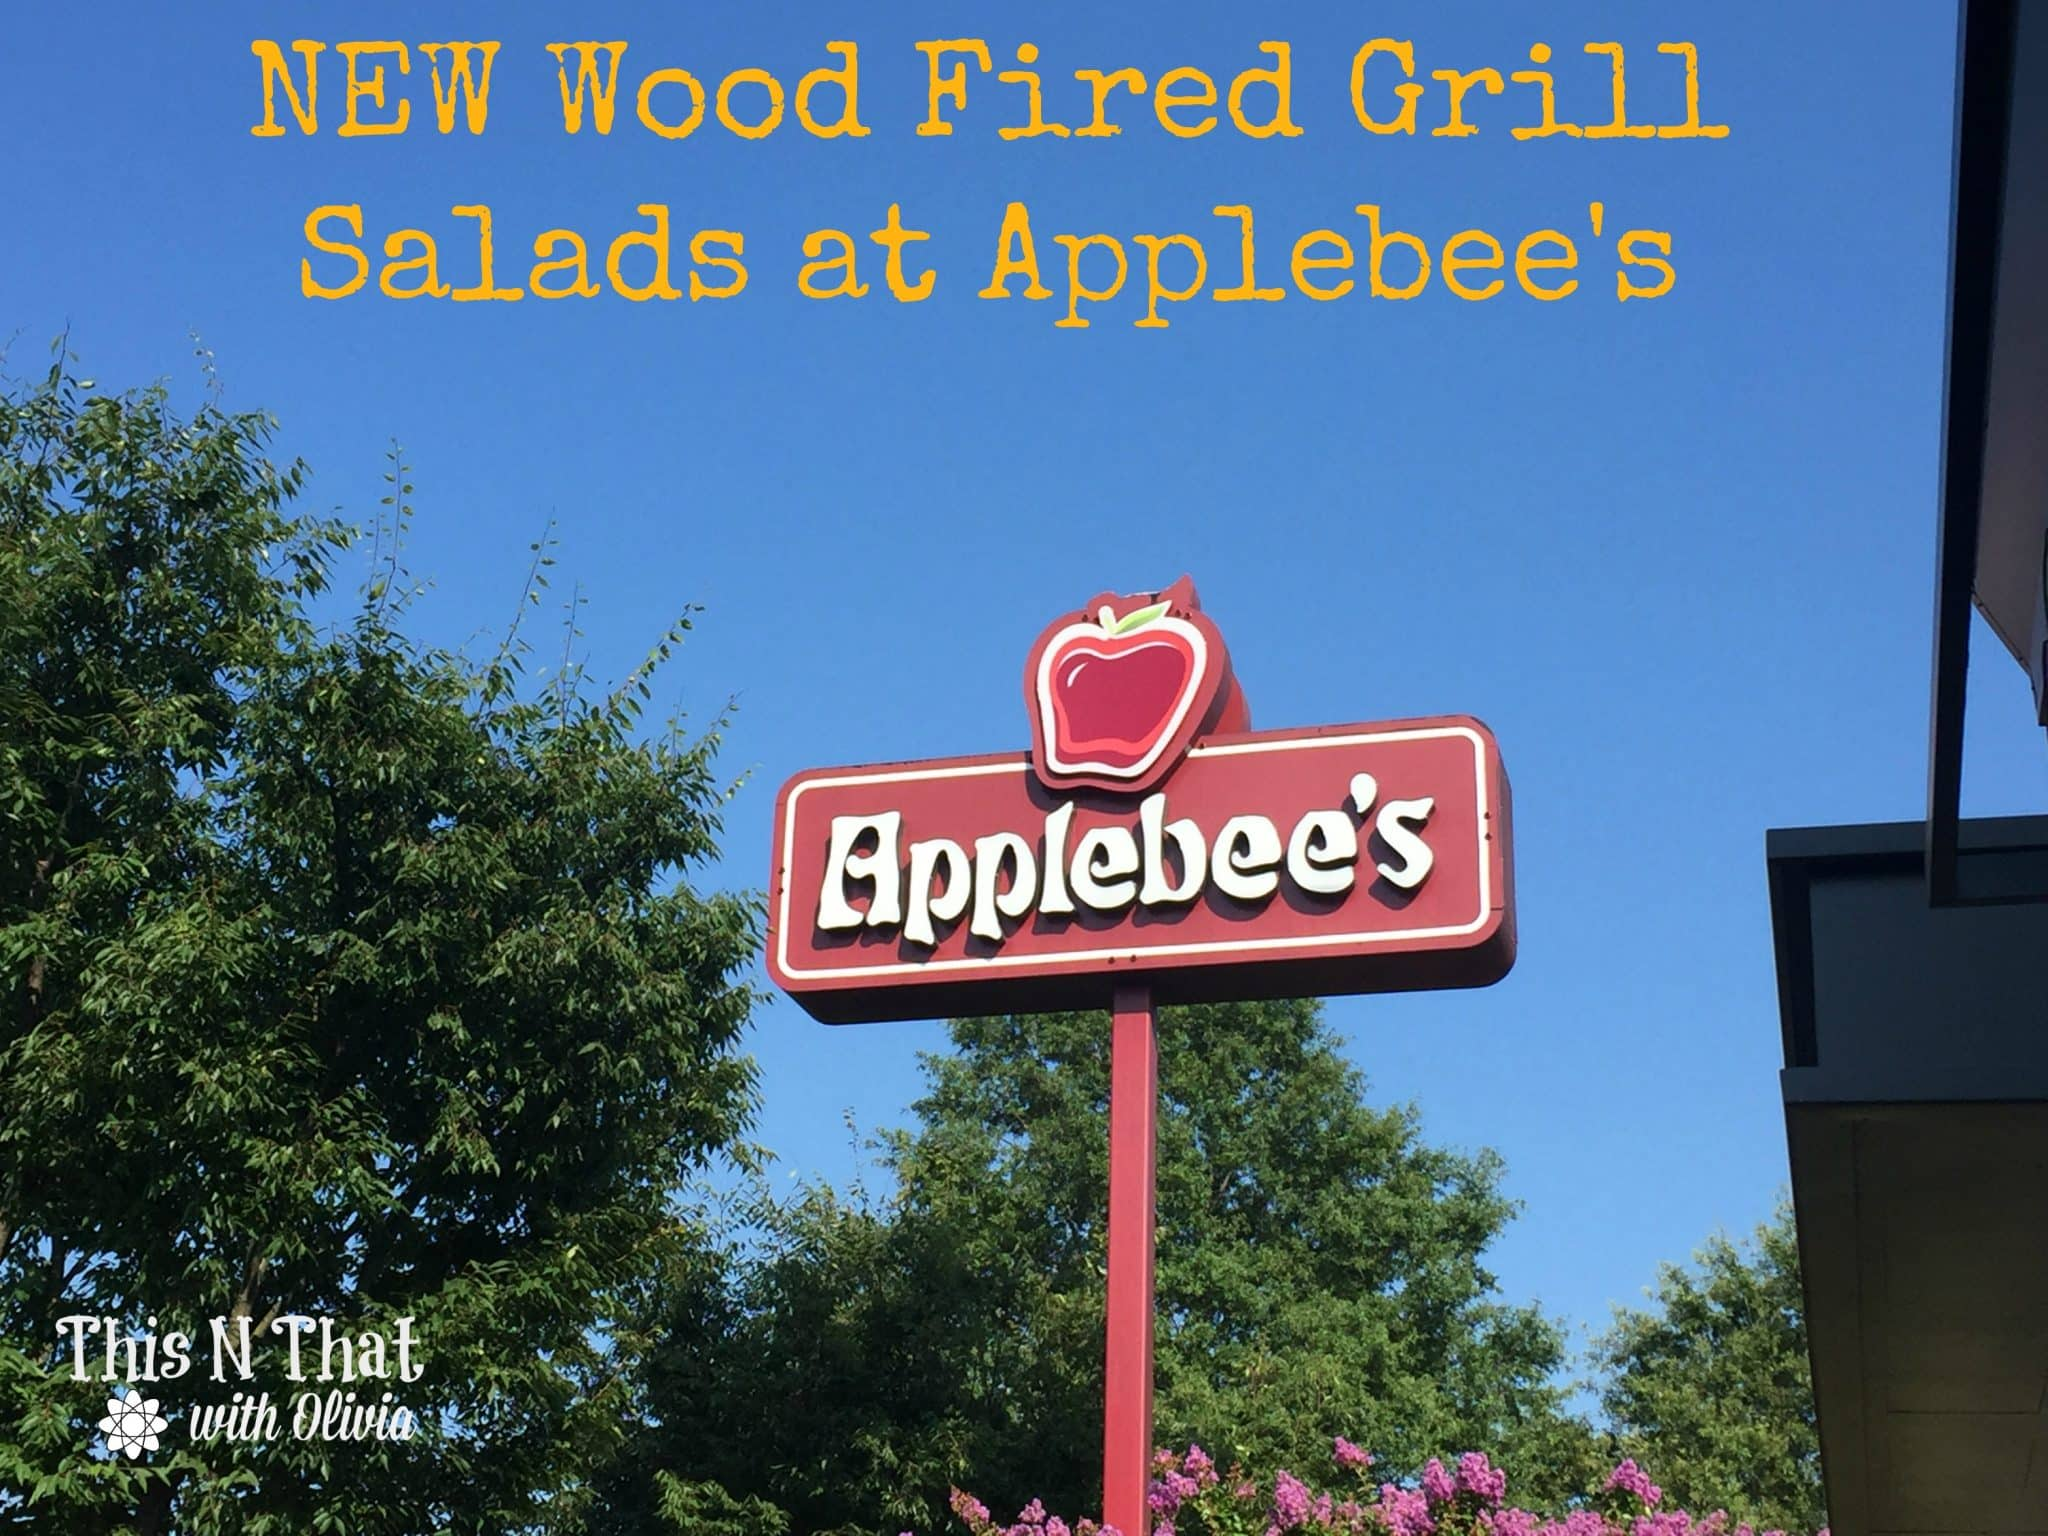 NEW Wood Fired Grill Salads at Applebee's @Applebees   ThisNThatwithOlivia.com